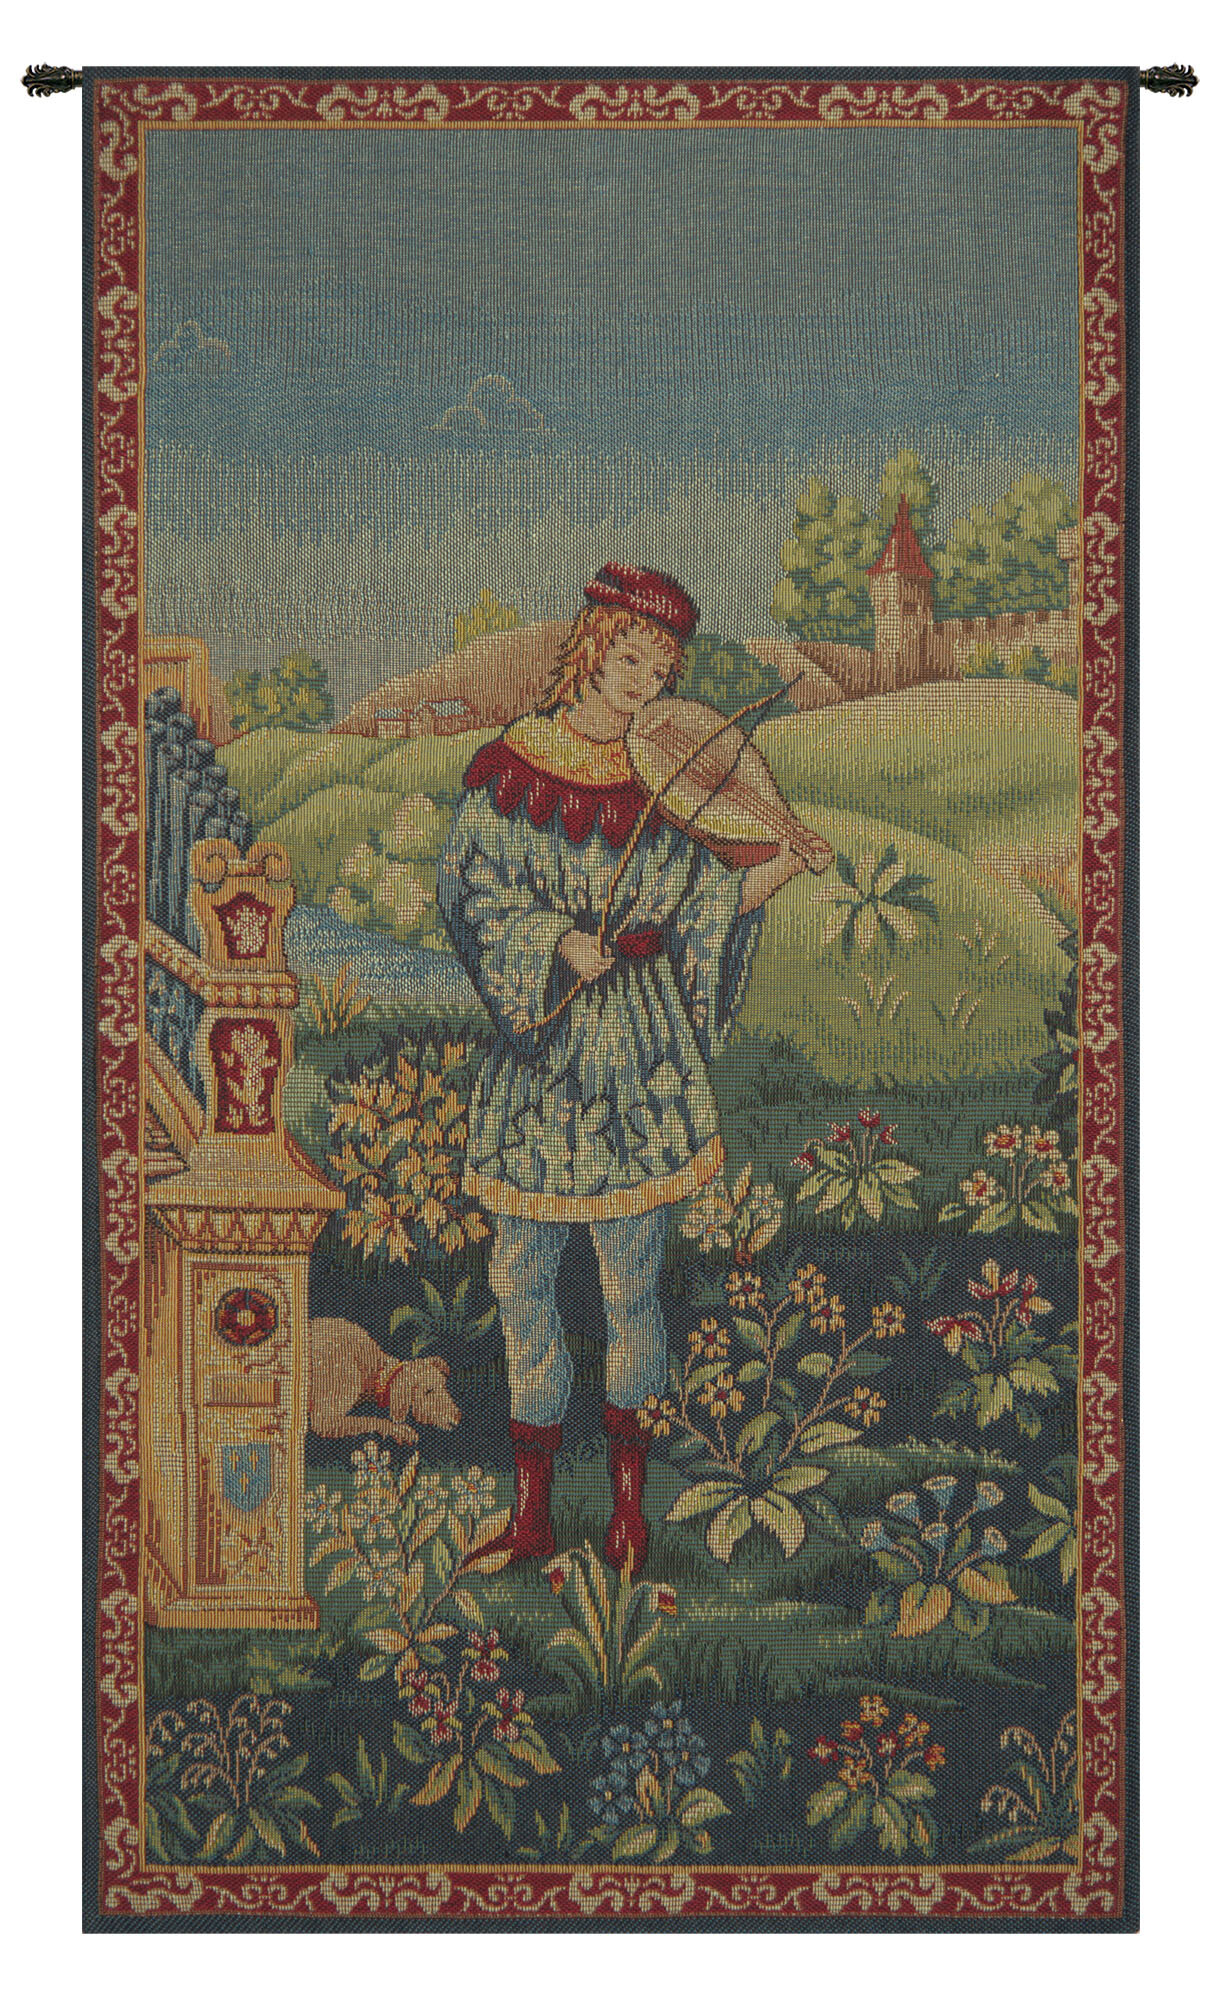 Blended Fabric Le Troubadour Tapestry Inside Most Current Blended Fabric Irises Tapestries (View 2 of 20)